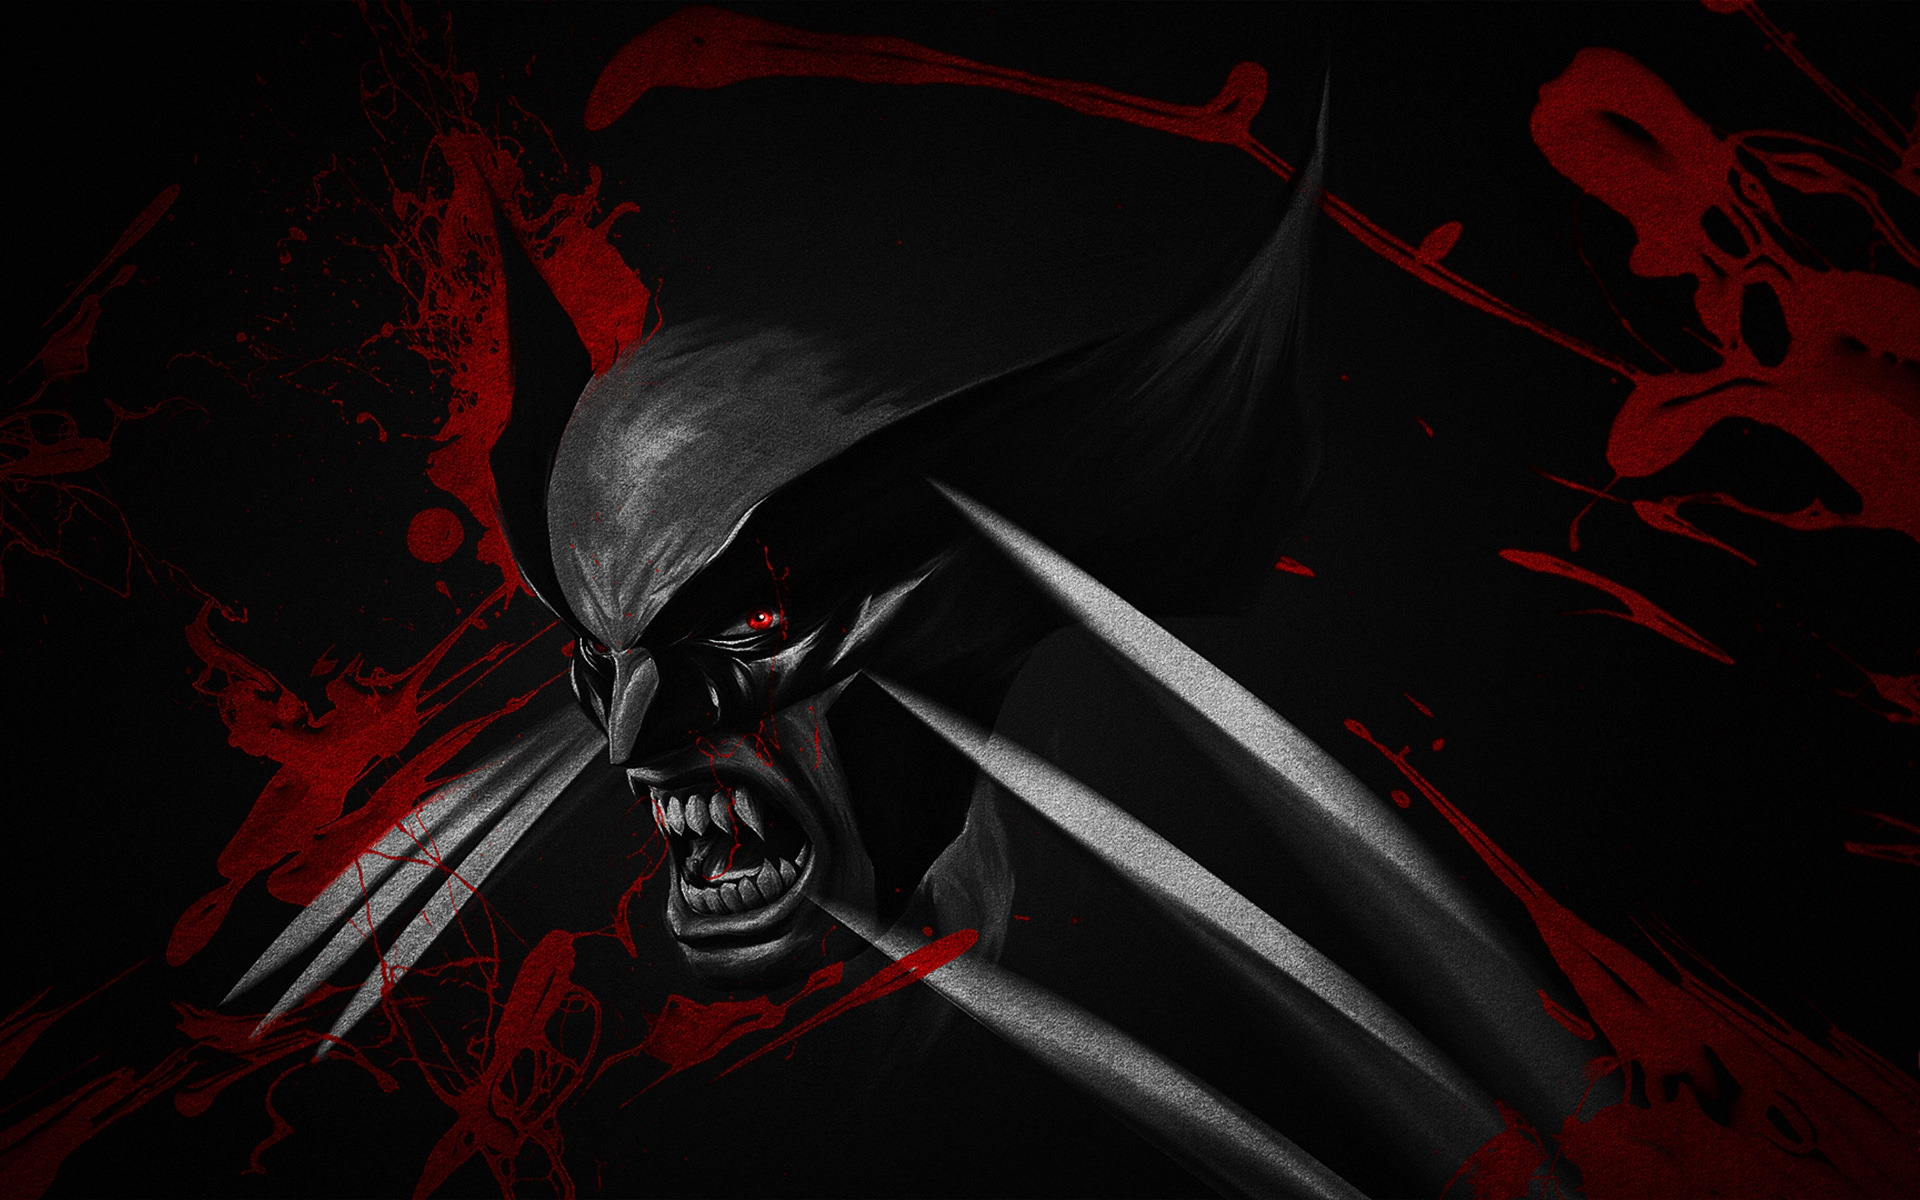 Black And Red Wolverine Hd Wallpaper Wallpaperfx